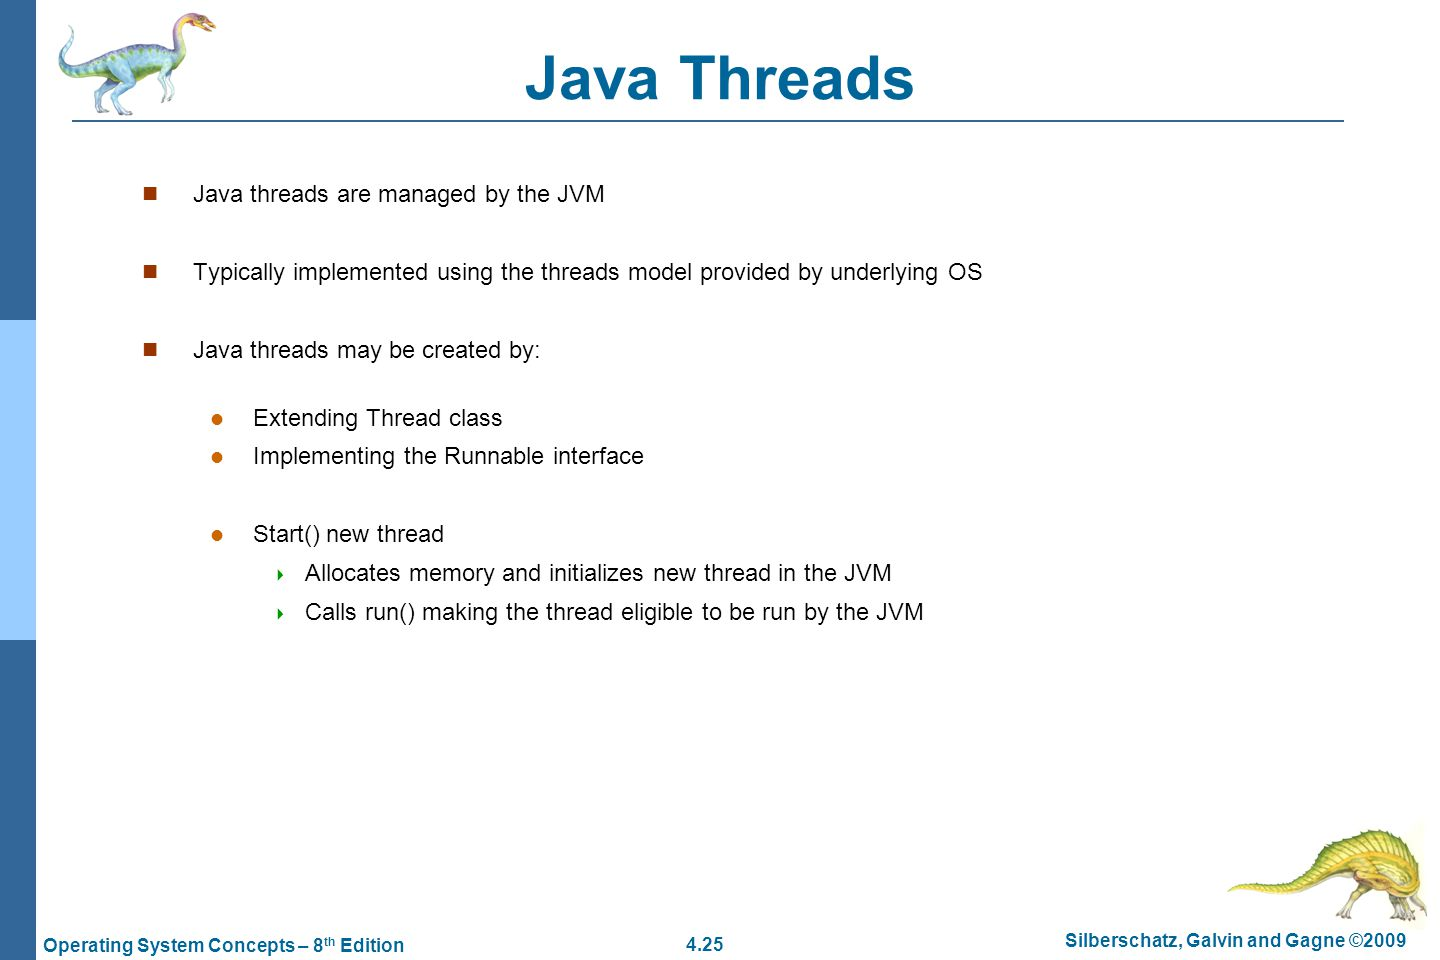 4.25 Silberschatz, Galvin and Gagne ©2009 Operating System Concepts – 8 th Edition Java Threads Java threads are managed by the JVM Typically implemented using the threads model provided by underlying OS Java threads may be created by: Extending Thread class Implementing the Runnable interface Start() new thread  Allocates memory and initializes new thread in the JVM  Calls run() making the thread eligible to be run by the JVM